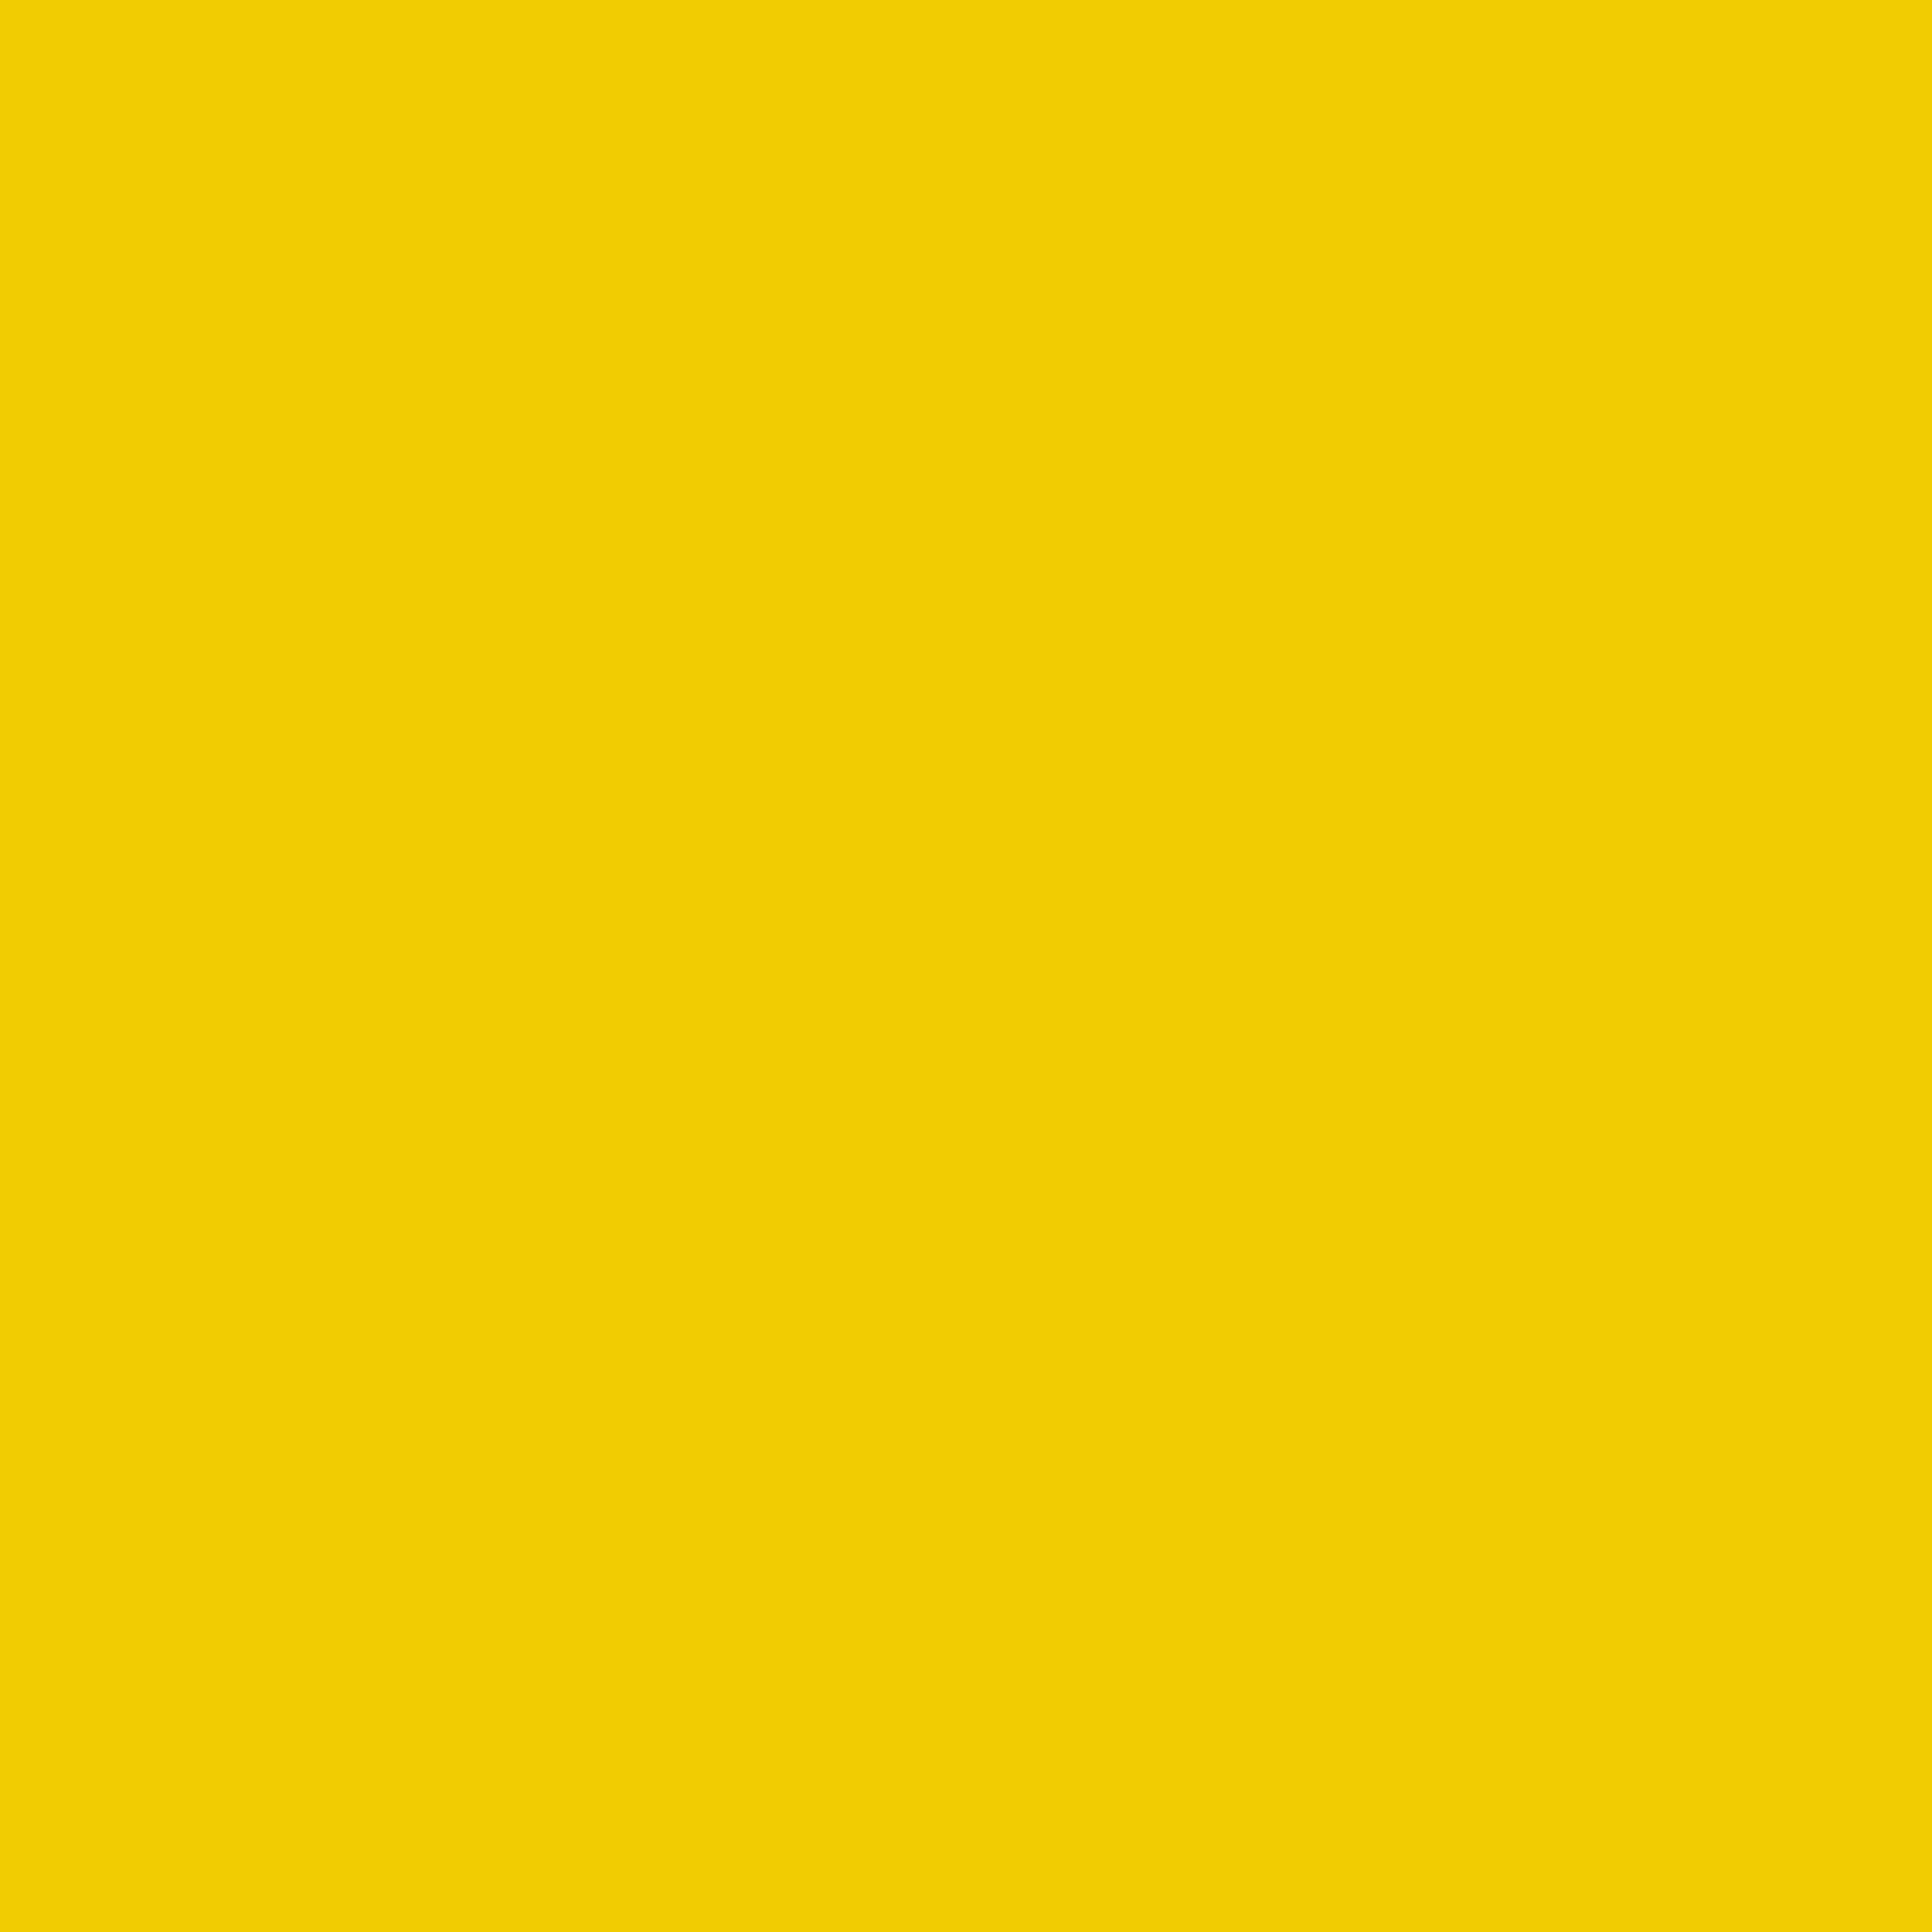 2732x2732 Yellow Munsell Solid Color Background